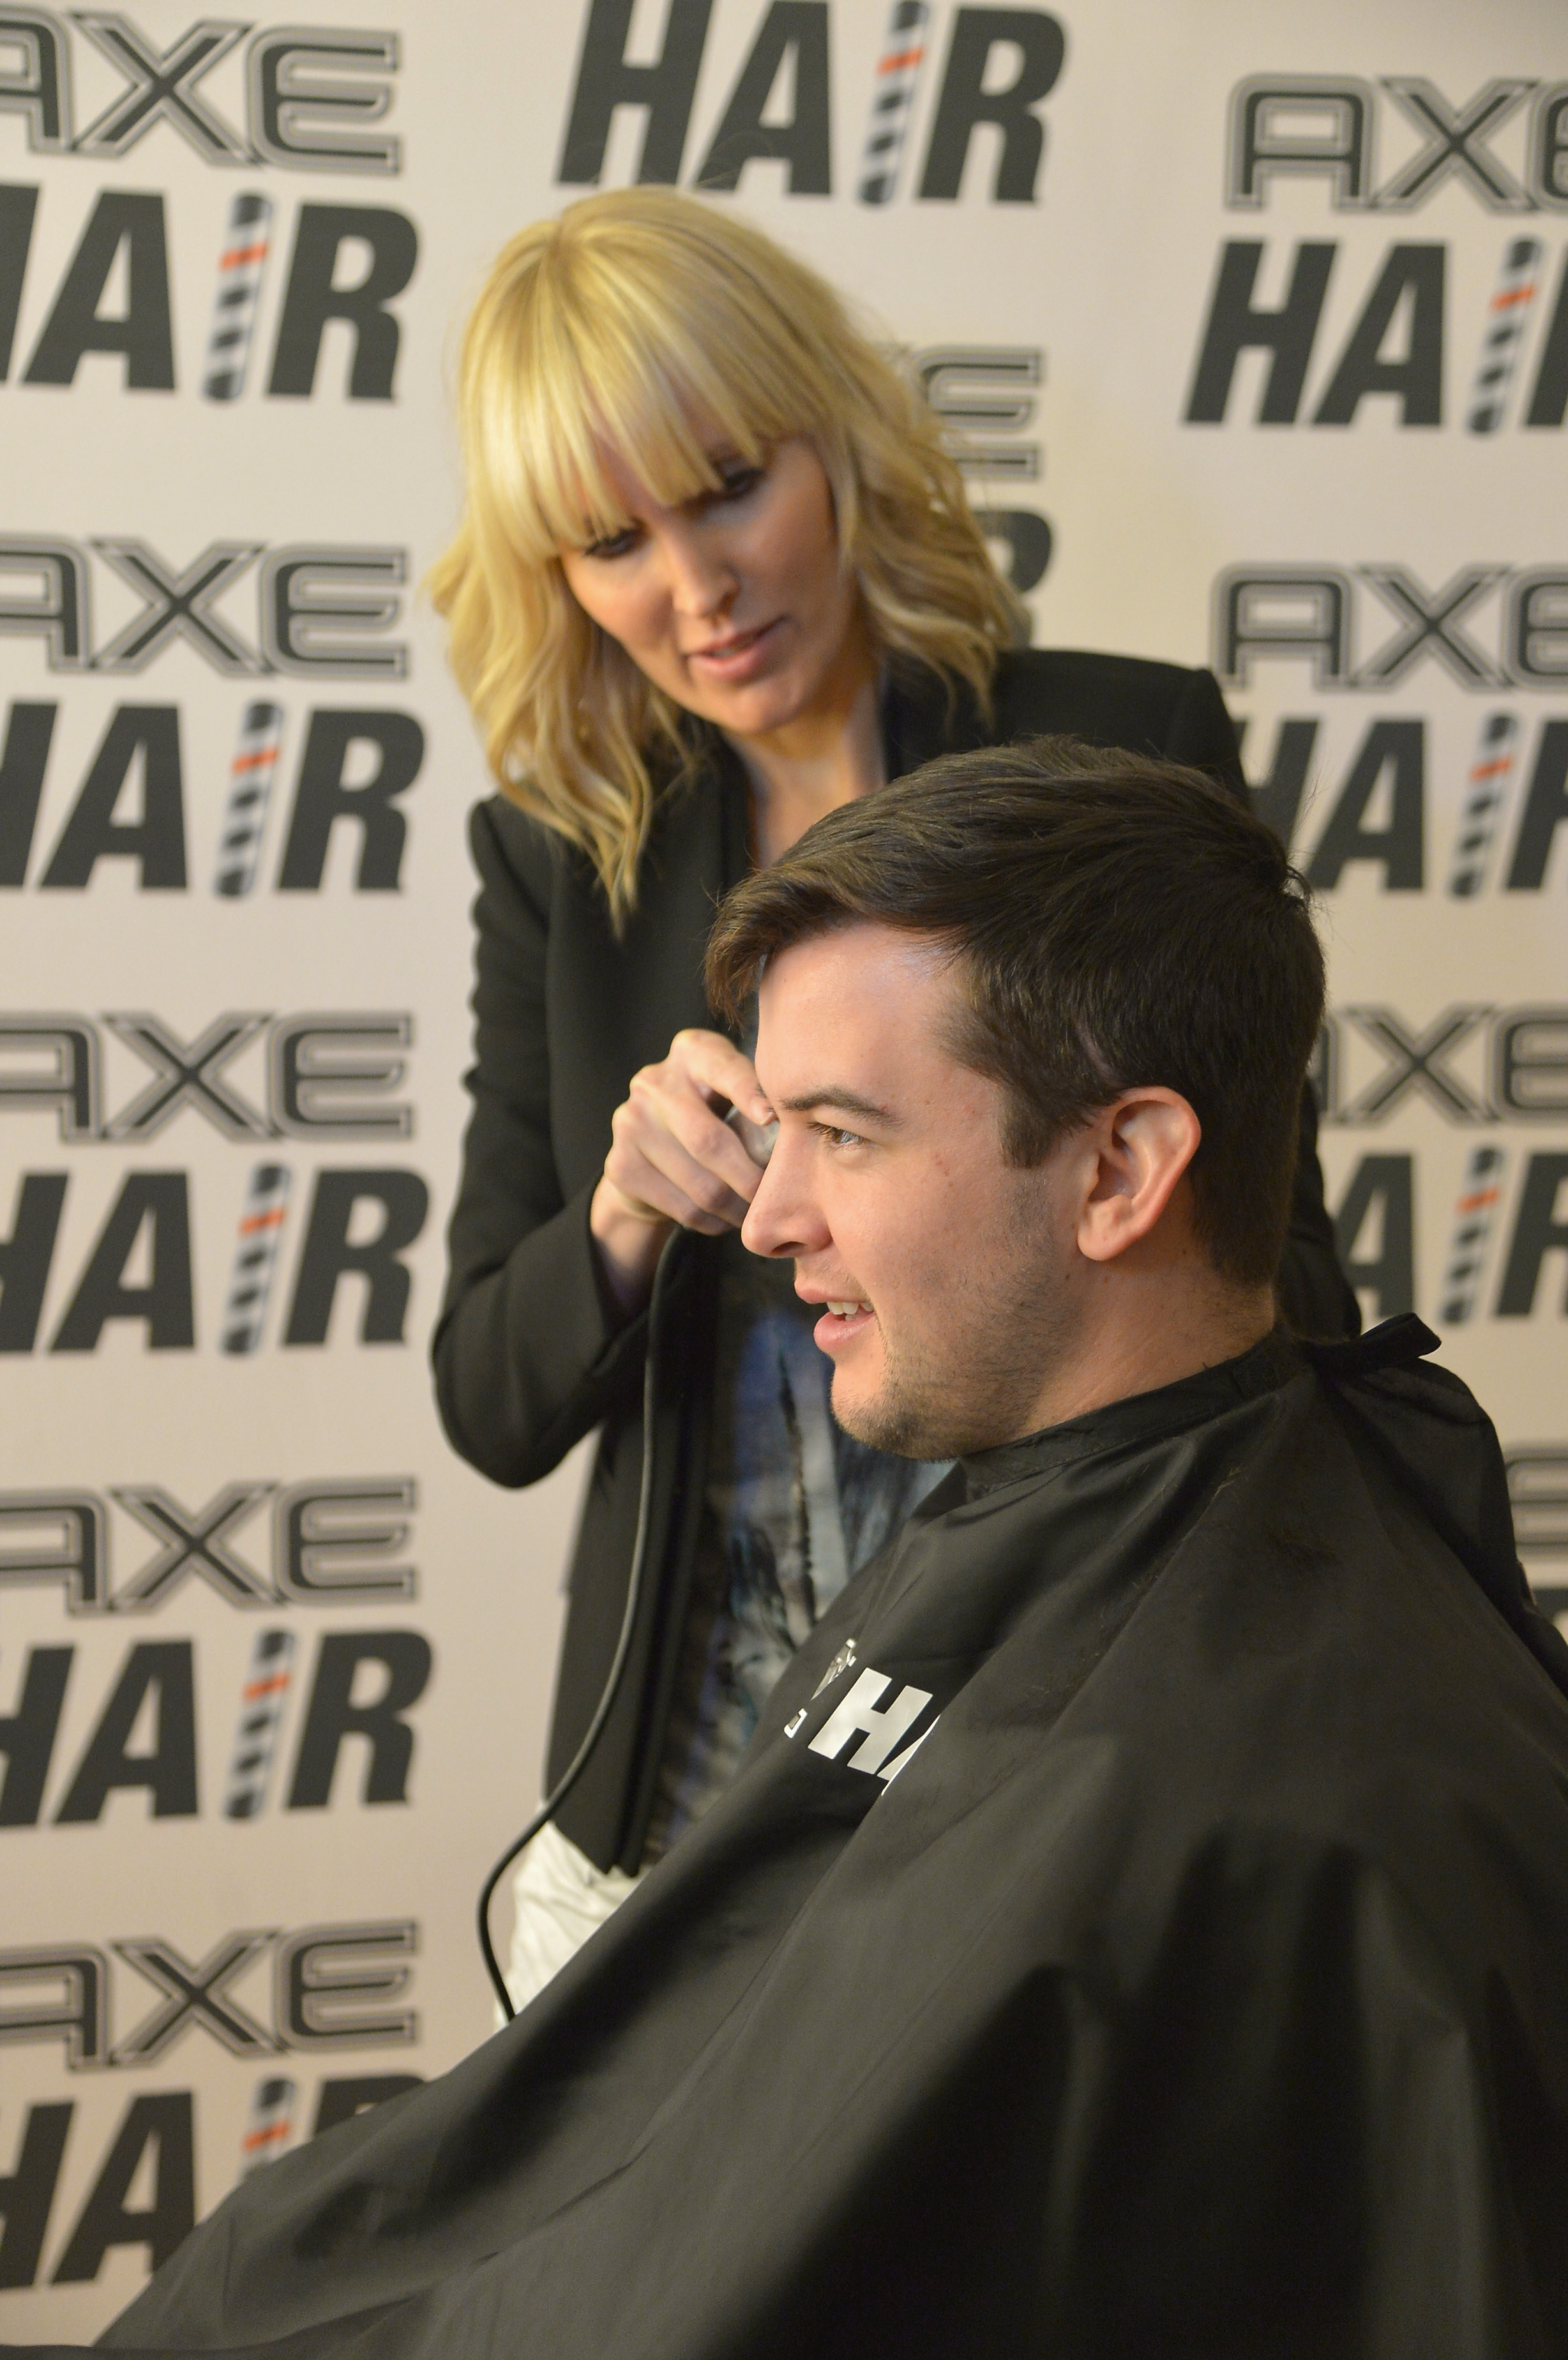 New Face: AXE Hair has signed former Alabama quarterback AJ McCarron, shown here Wednesday in New York City, and hopes to take advantage of his clean image.